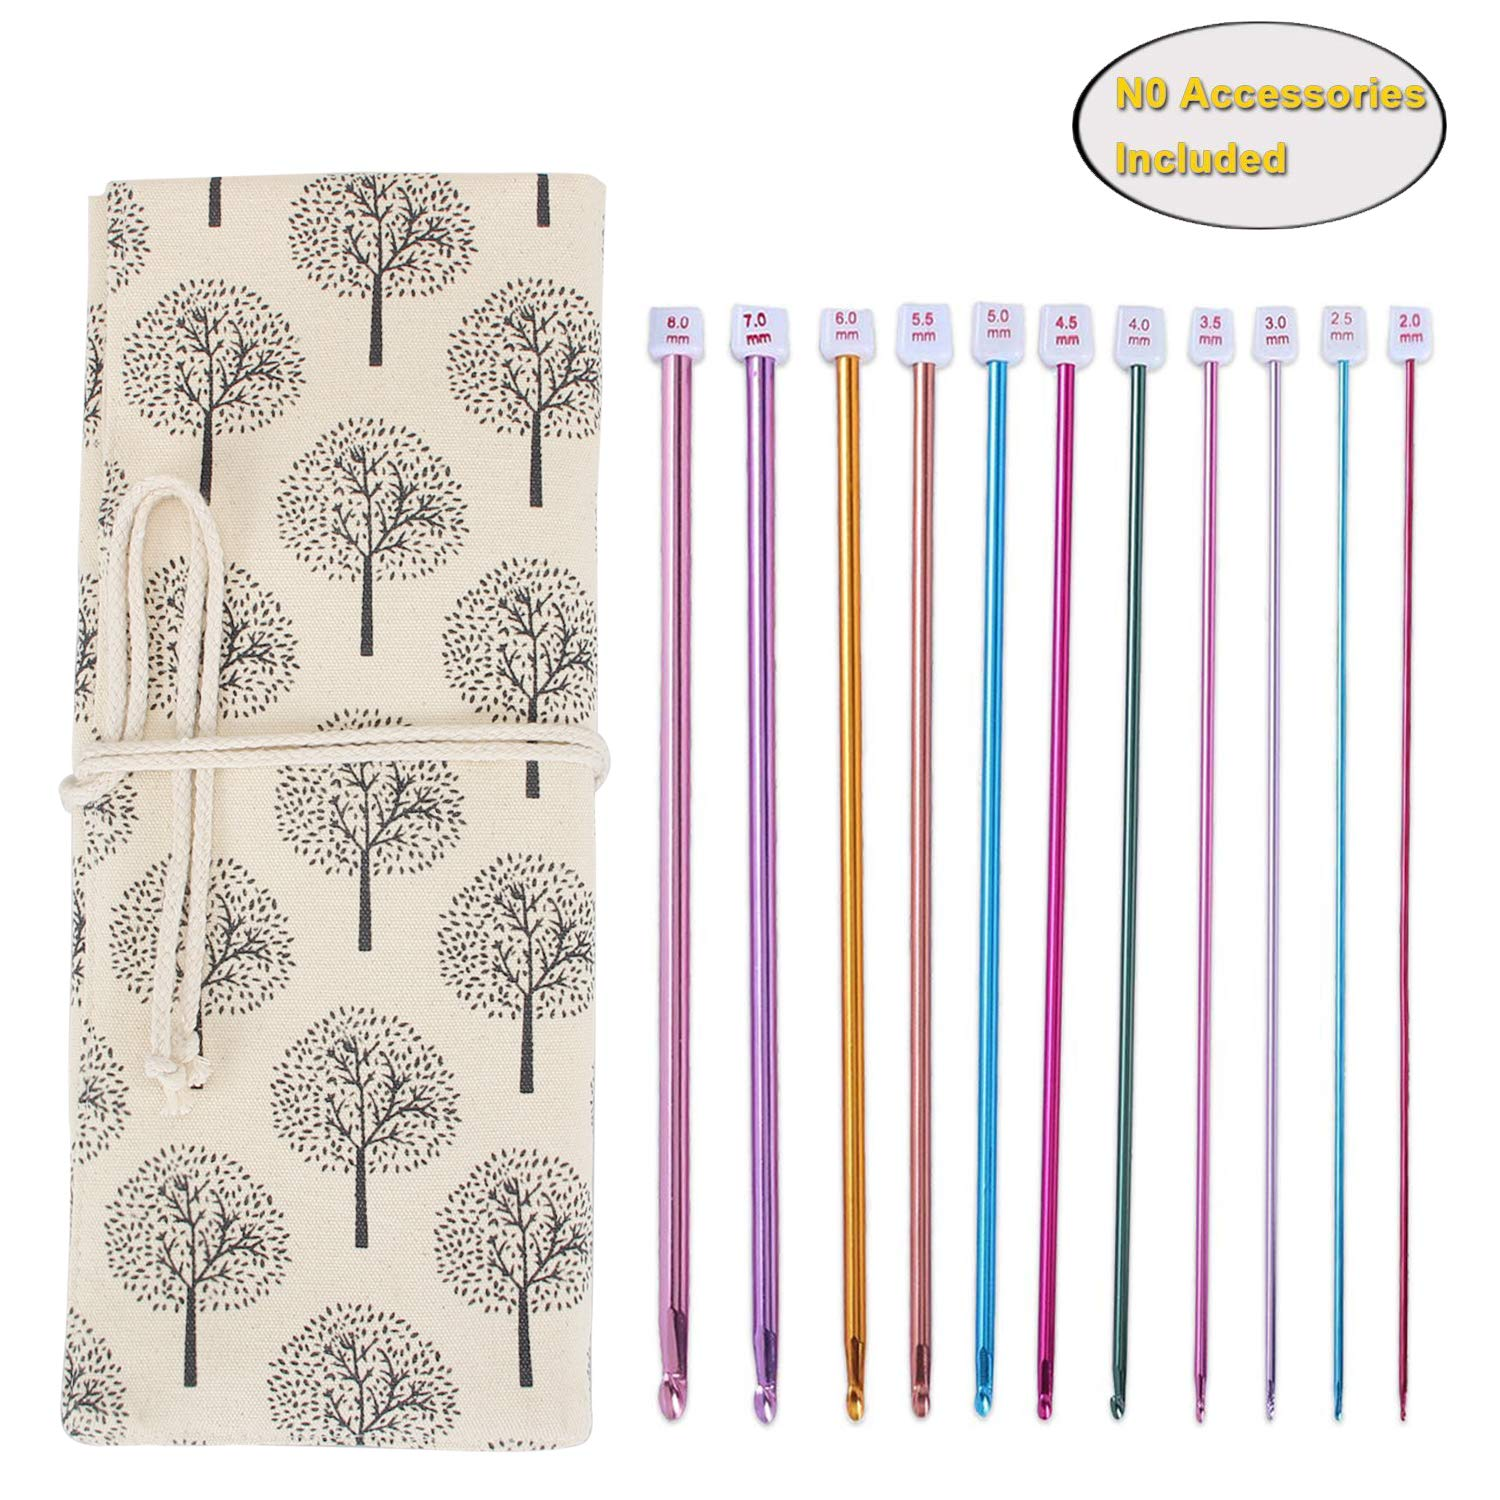 Teamoy Tunisian Crochet Hook Organizer Bag(up to 14 Inches), Cotton Canvas Roll Wrap for Afghan Crochet Hooks, Knitting Needles and Accessories, Tree